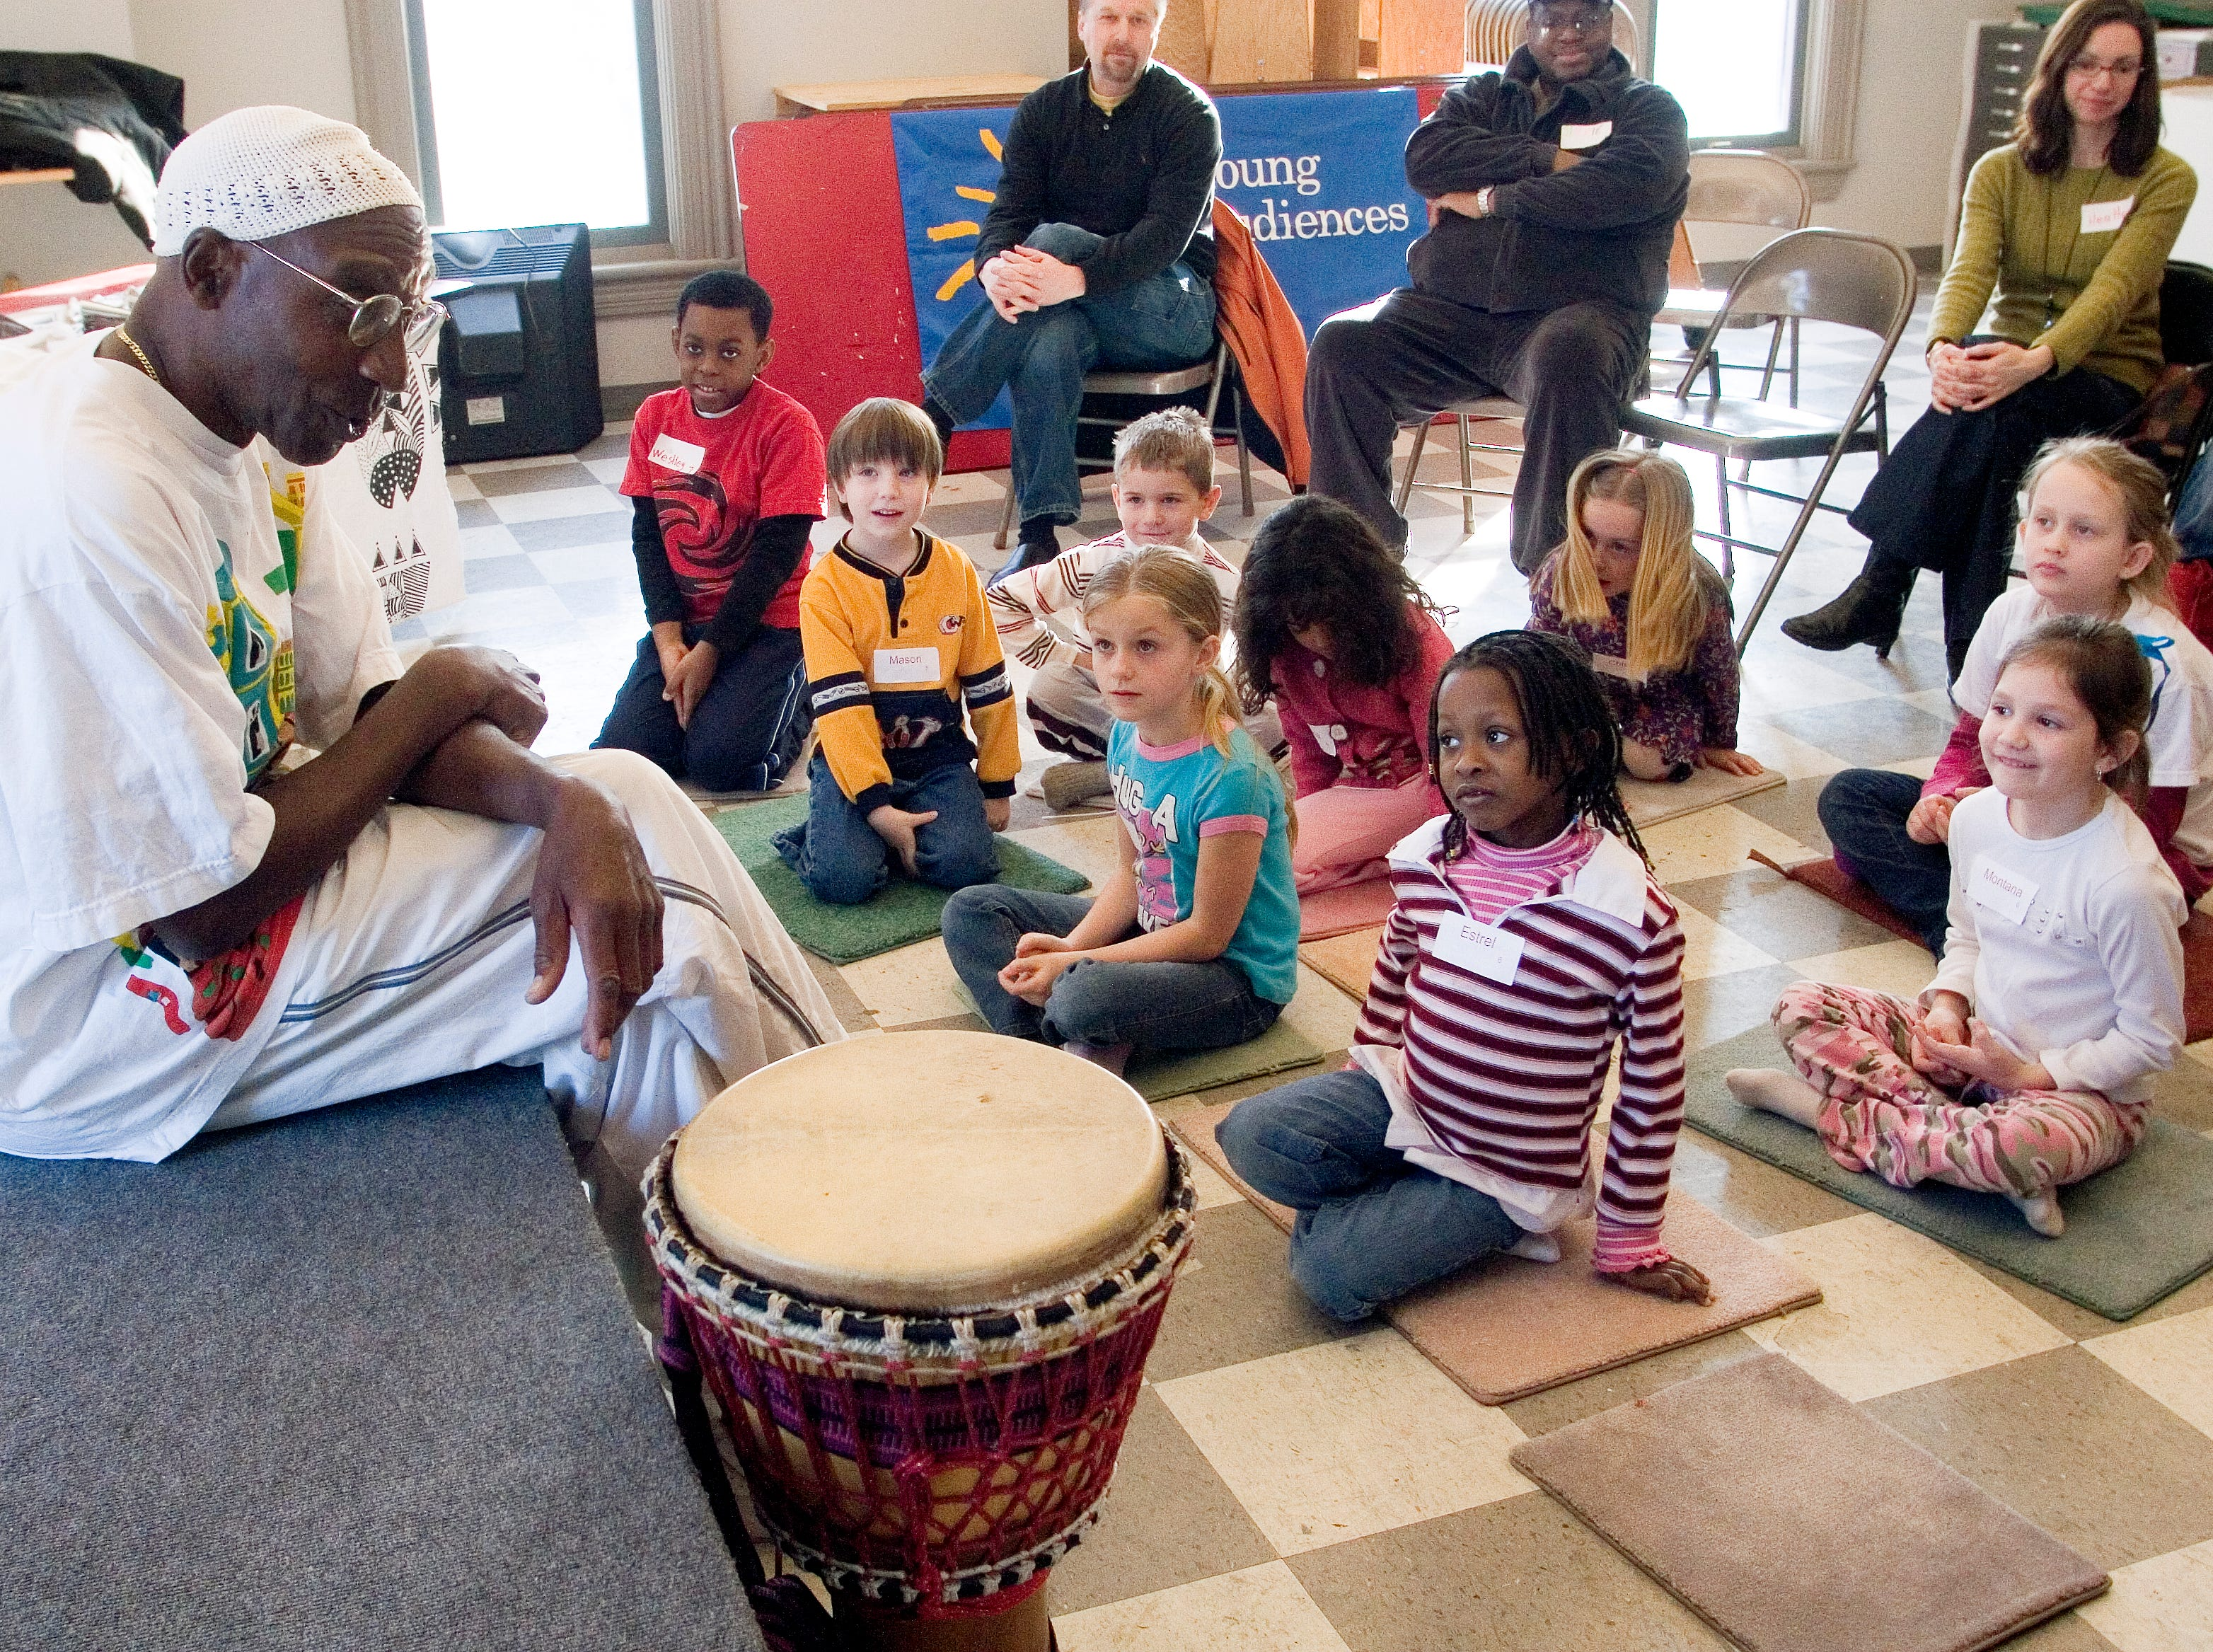 2009: Clyde Morgan, associated professor of dance at SUNY Brockport, introduces children to musical instruments  during the Martin Luther King Jr. celebration at 171 Cedar Arts Center in Corning Monday.